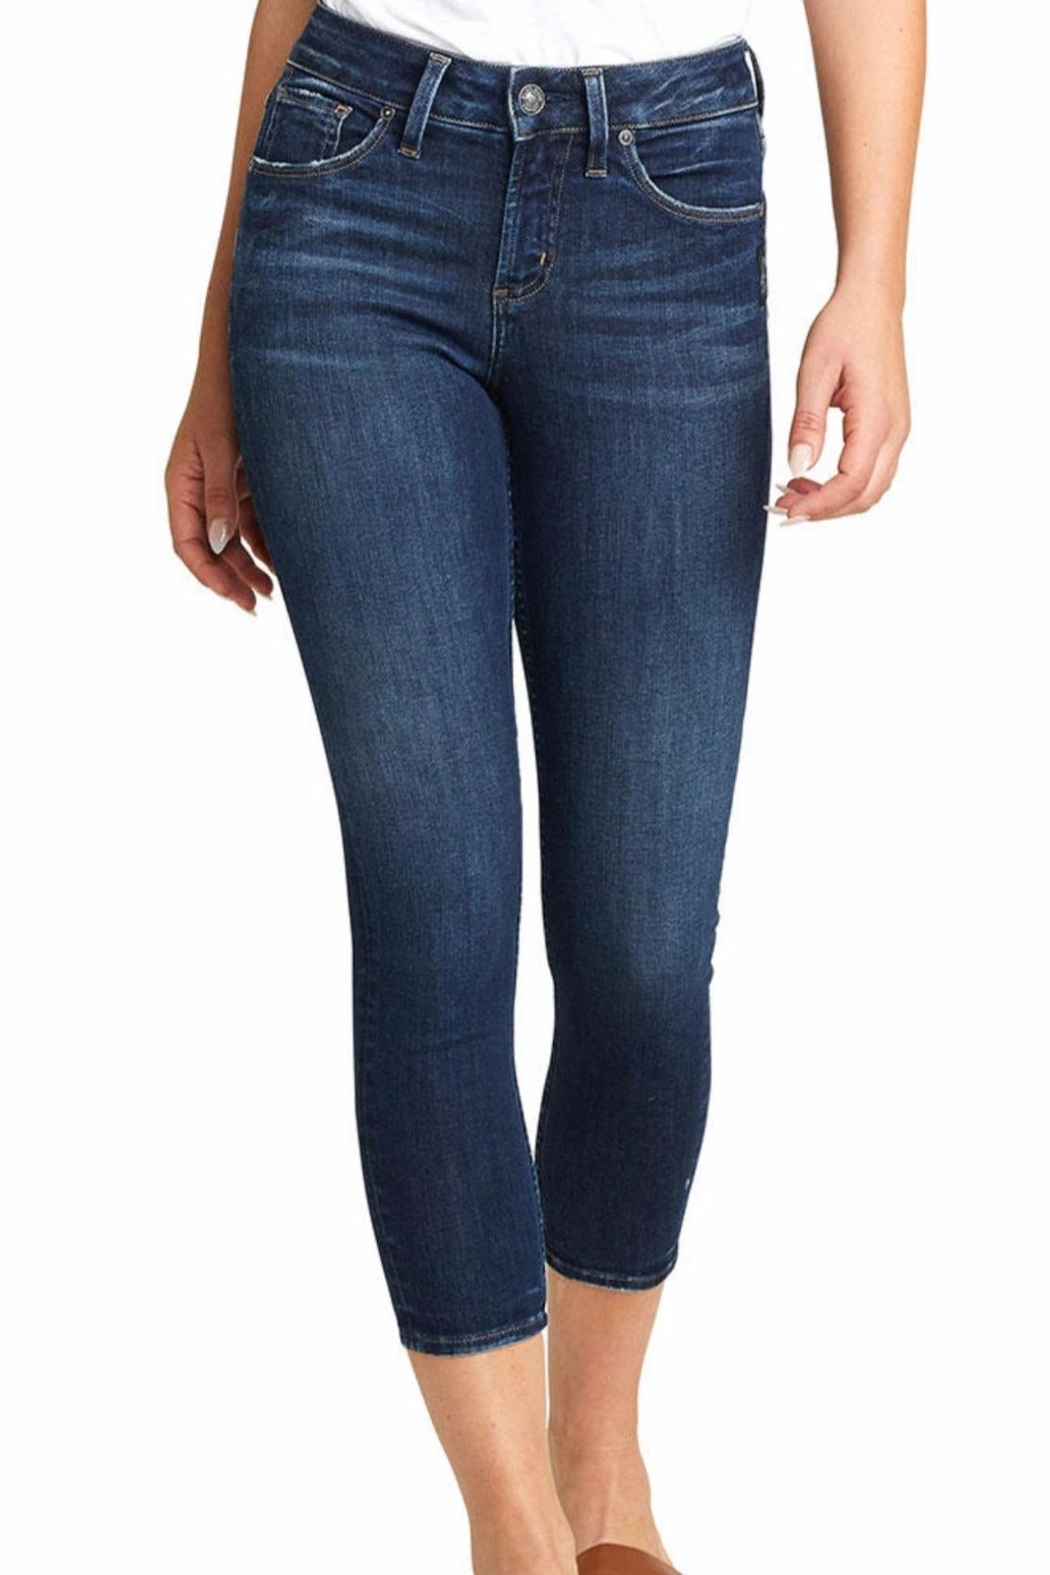 Silver Jeans Co. Avery Skinny Crop - Main Image